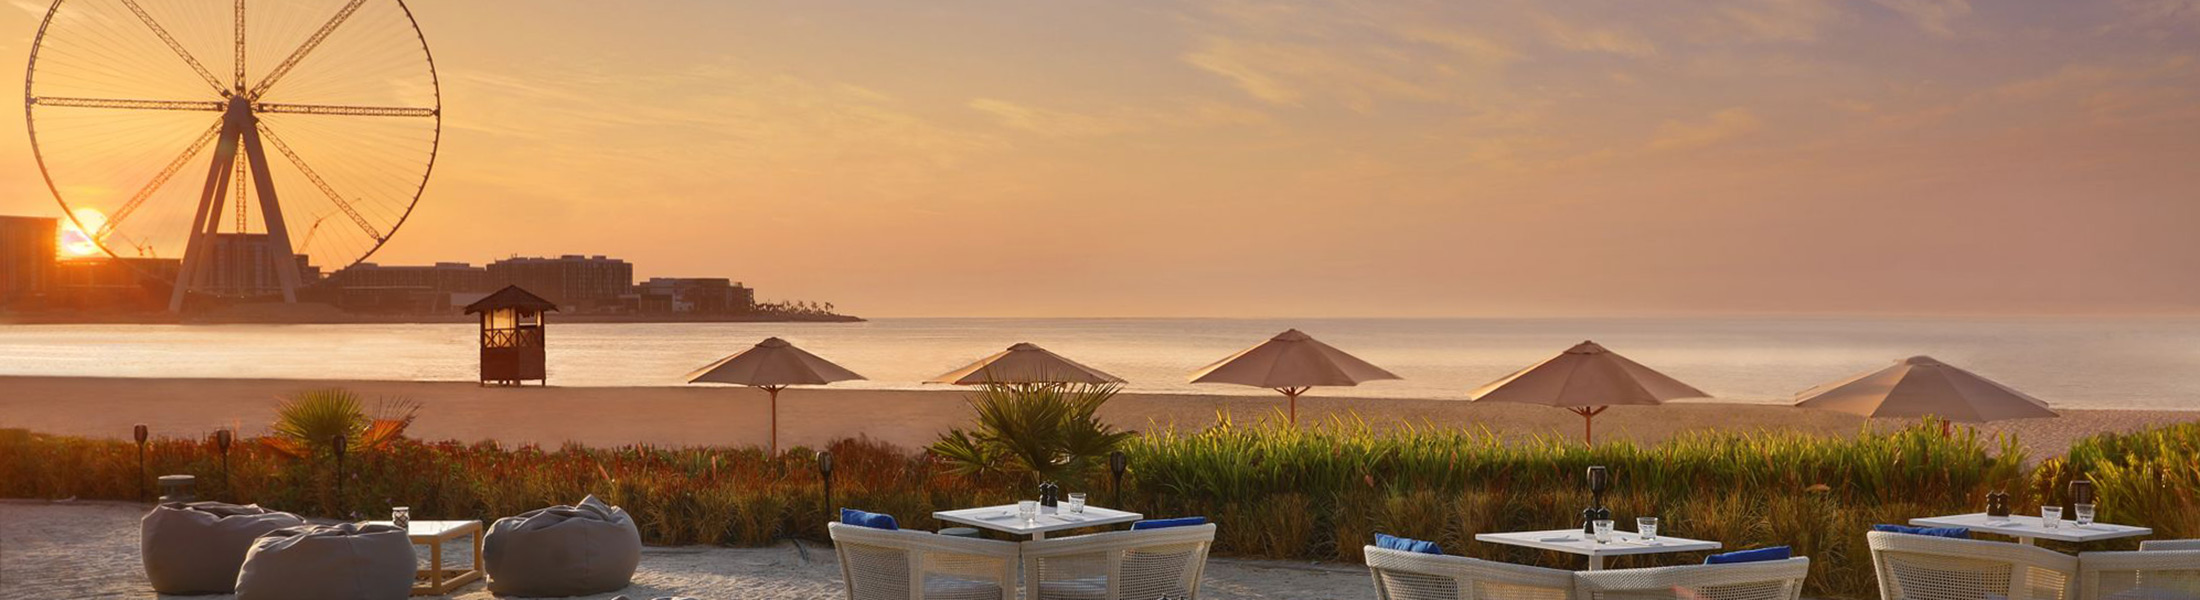 Outdoor dining at sunset at Ritz-Carlton Dubai